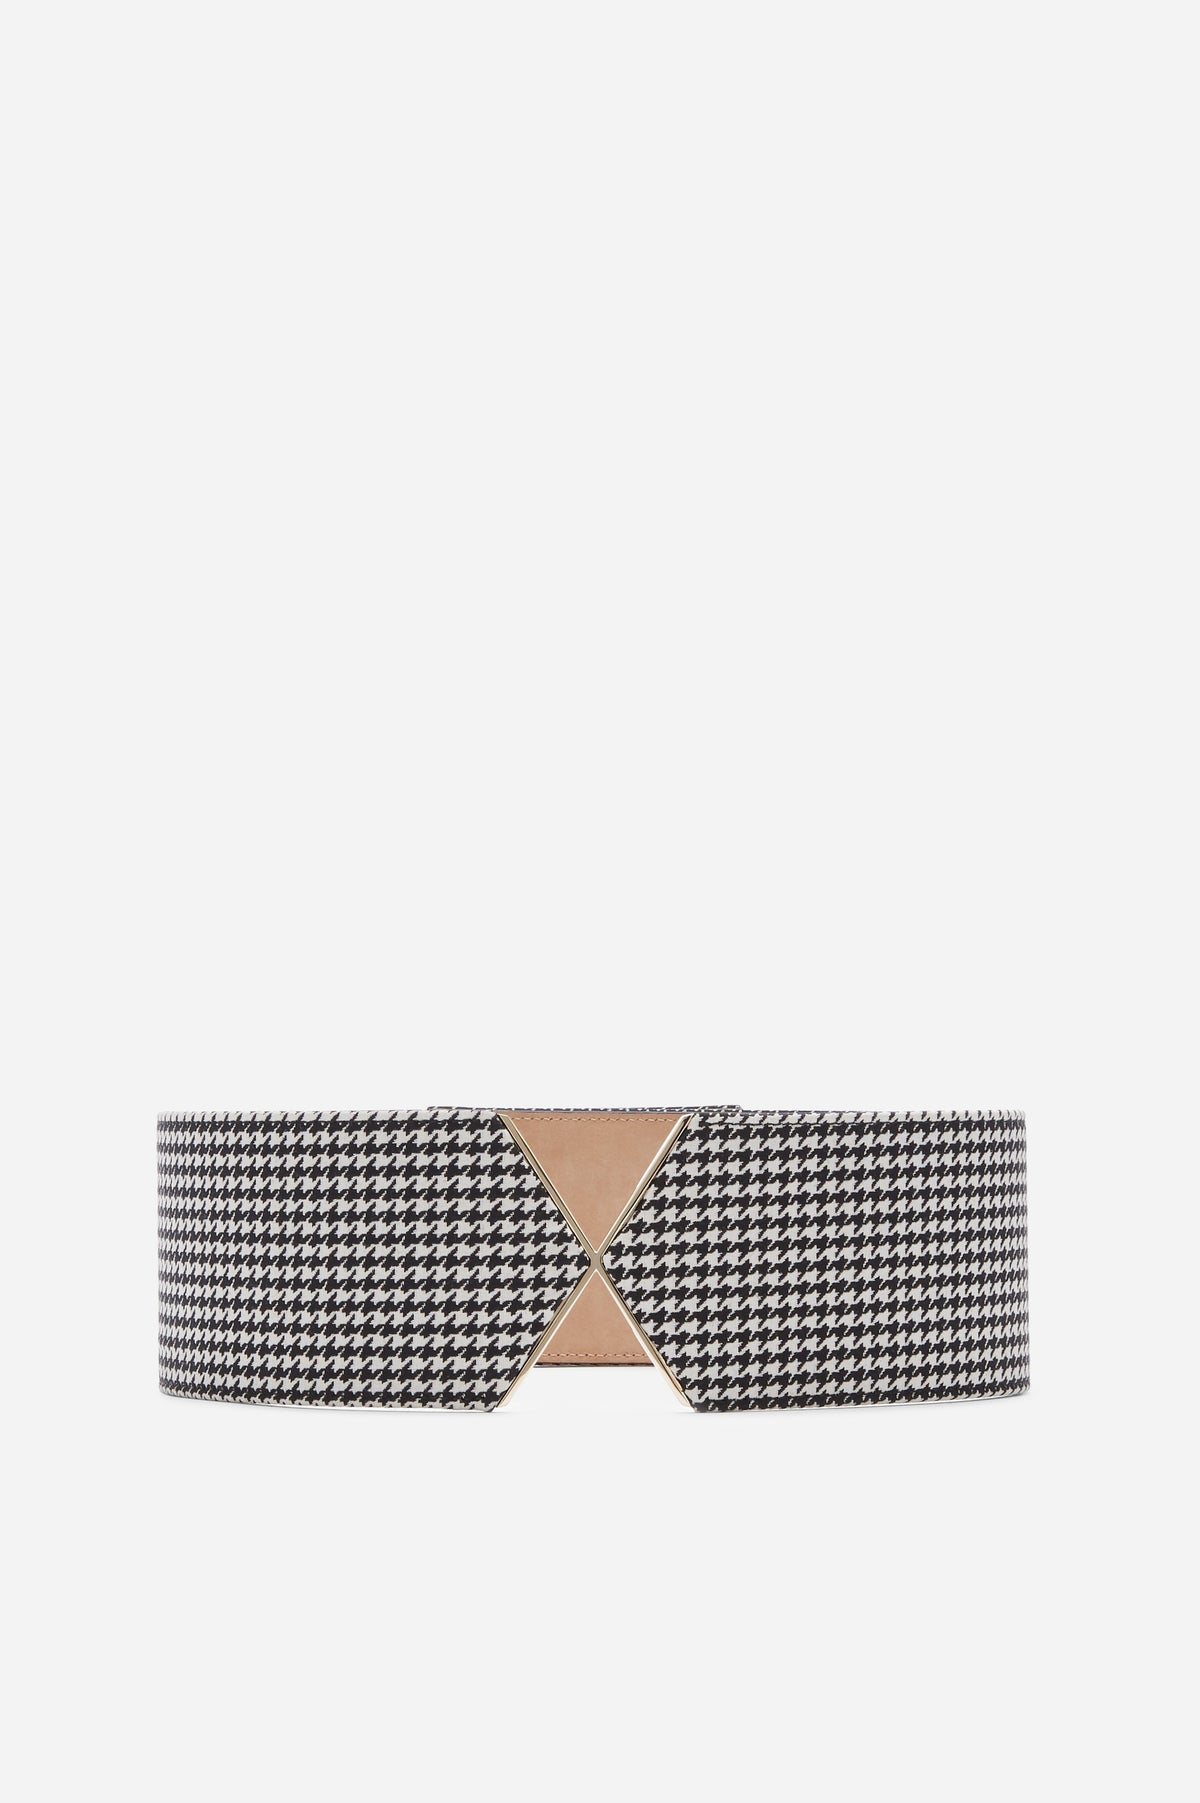 Monochrome houndstooth  with light gold hardware